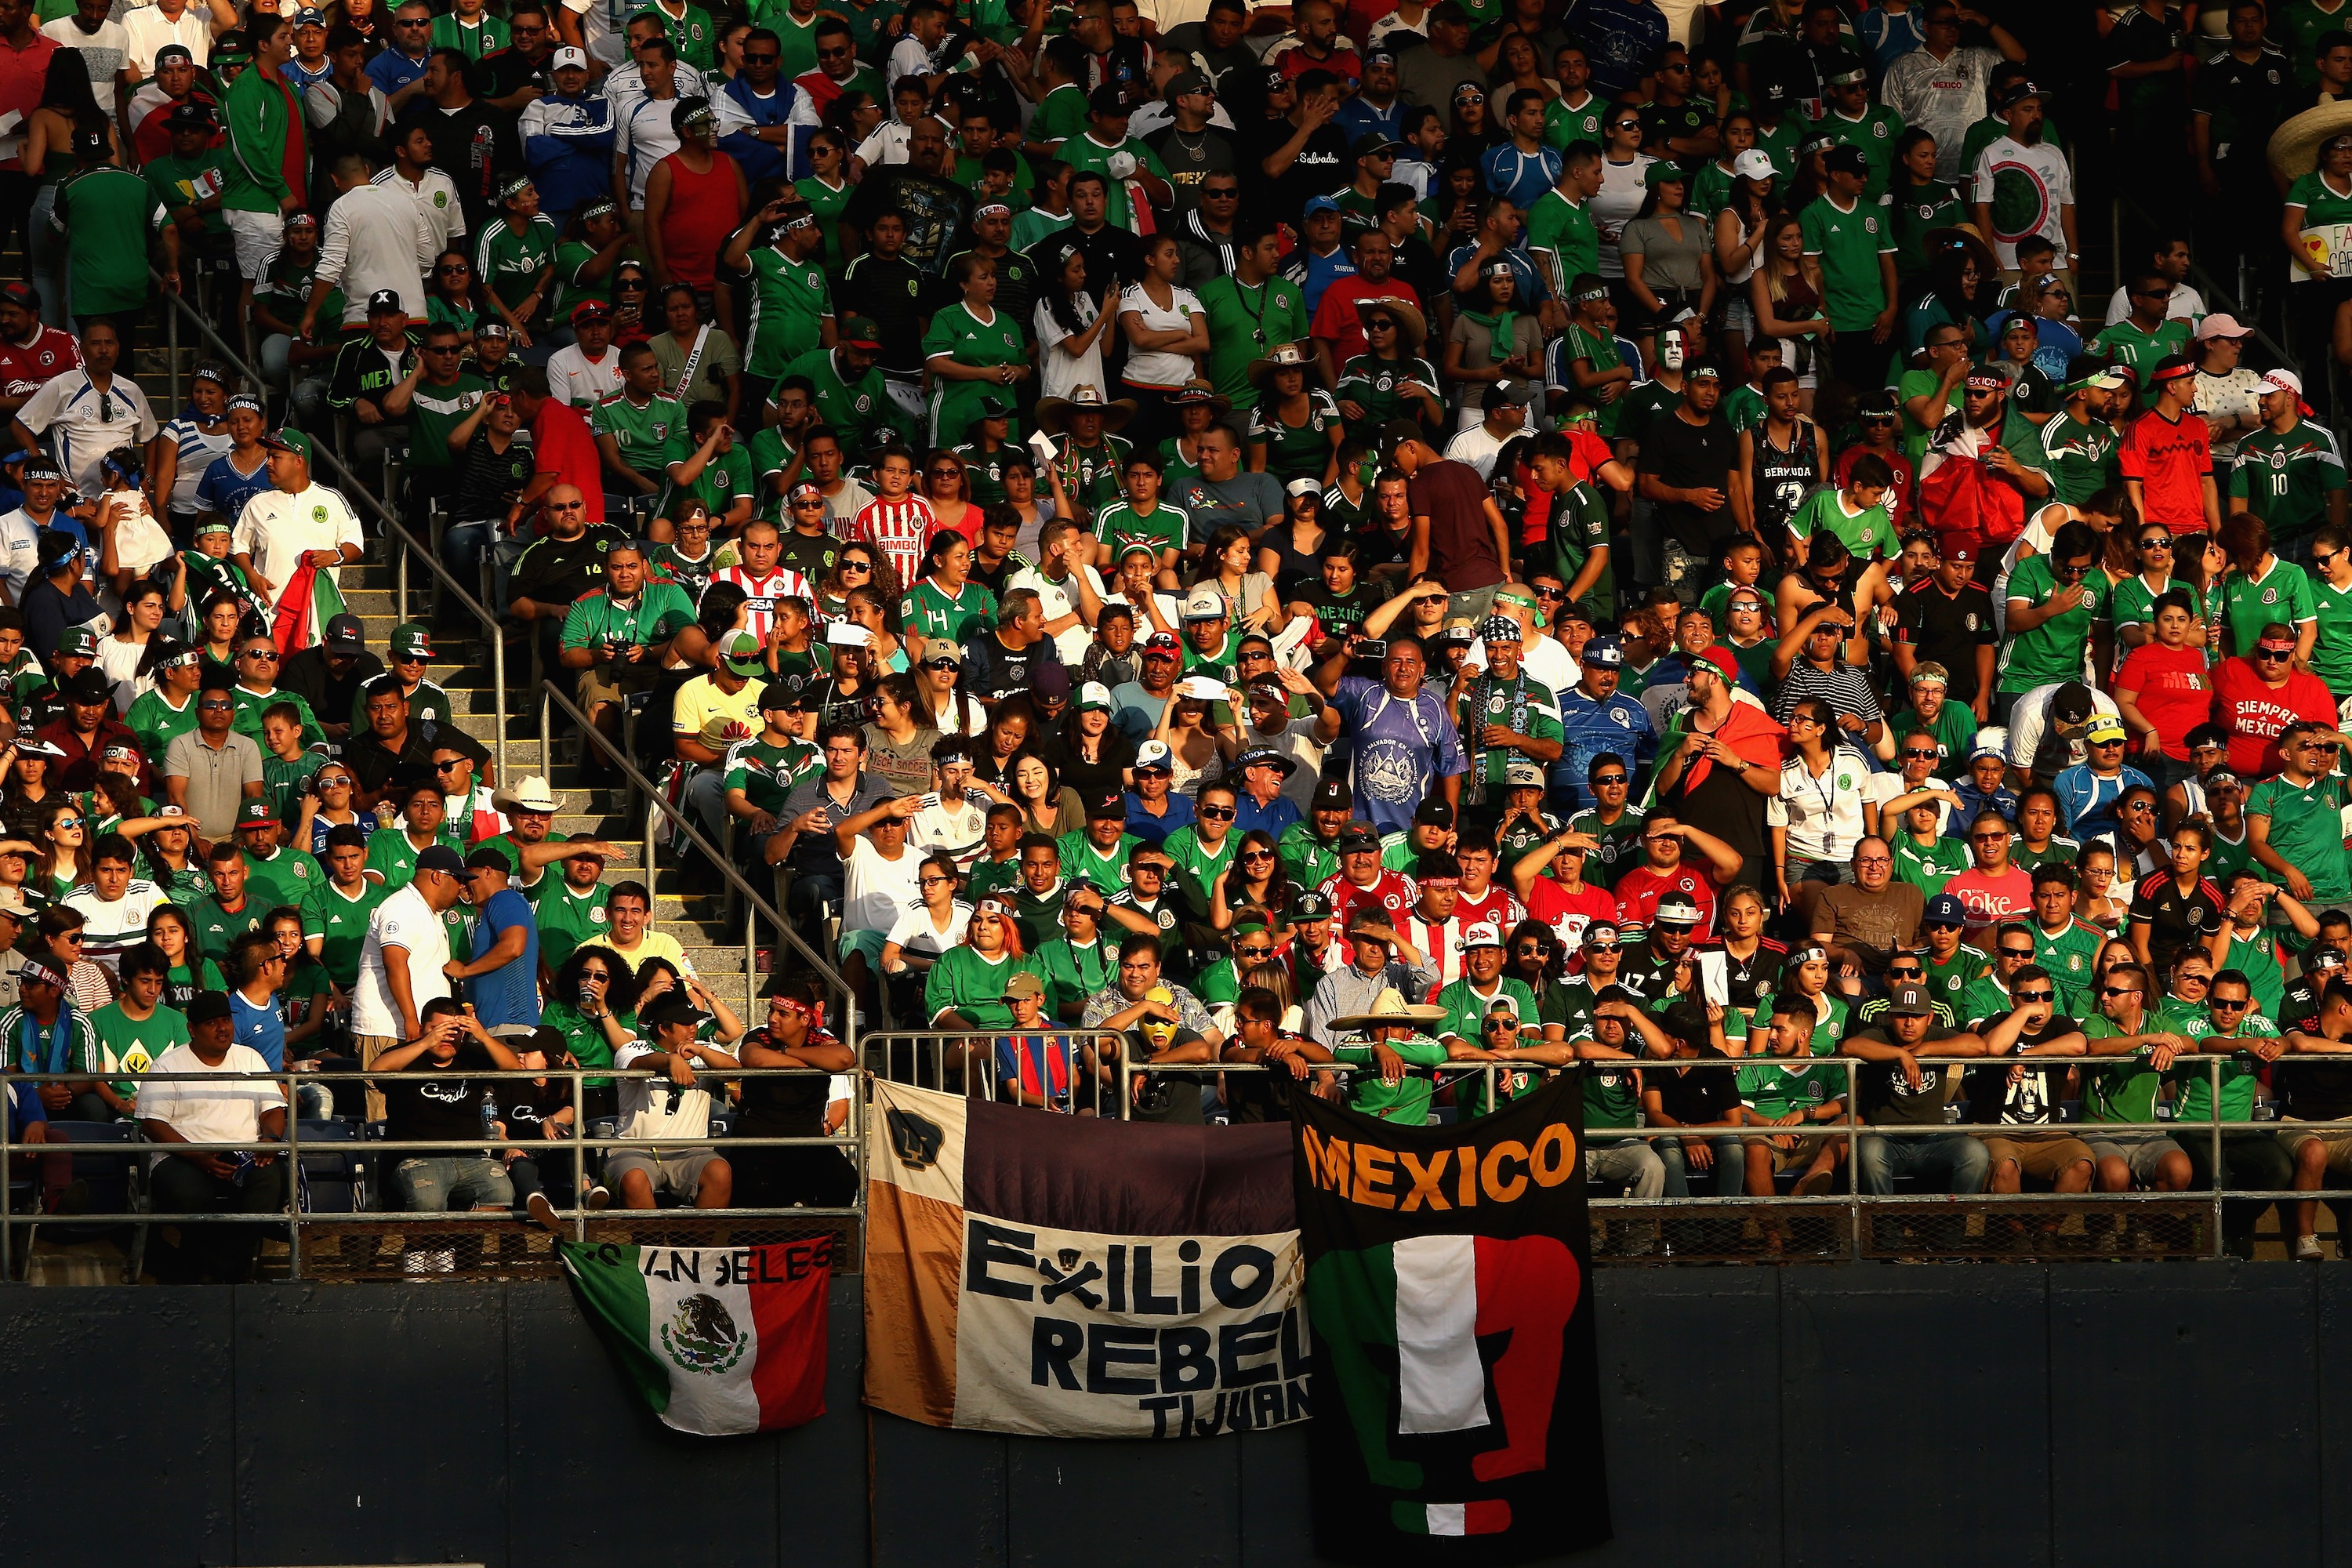 """Mexico's """"Puto"""" Chant Won't Ever Go Away, No Matter What FIFA Does"""